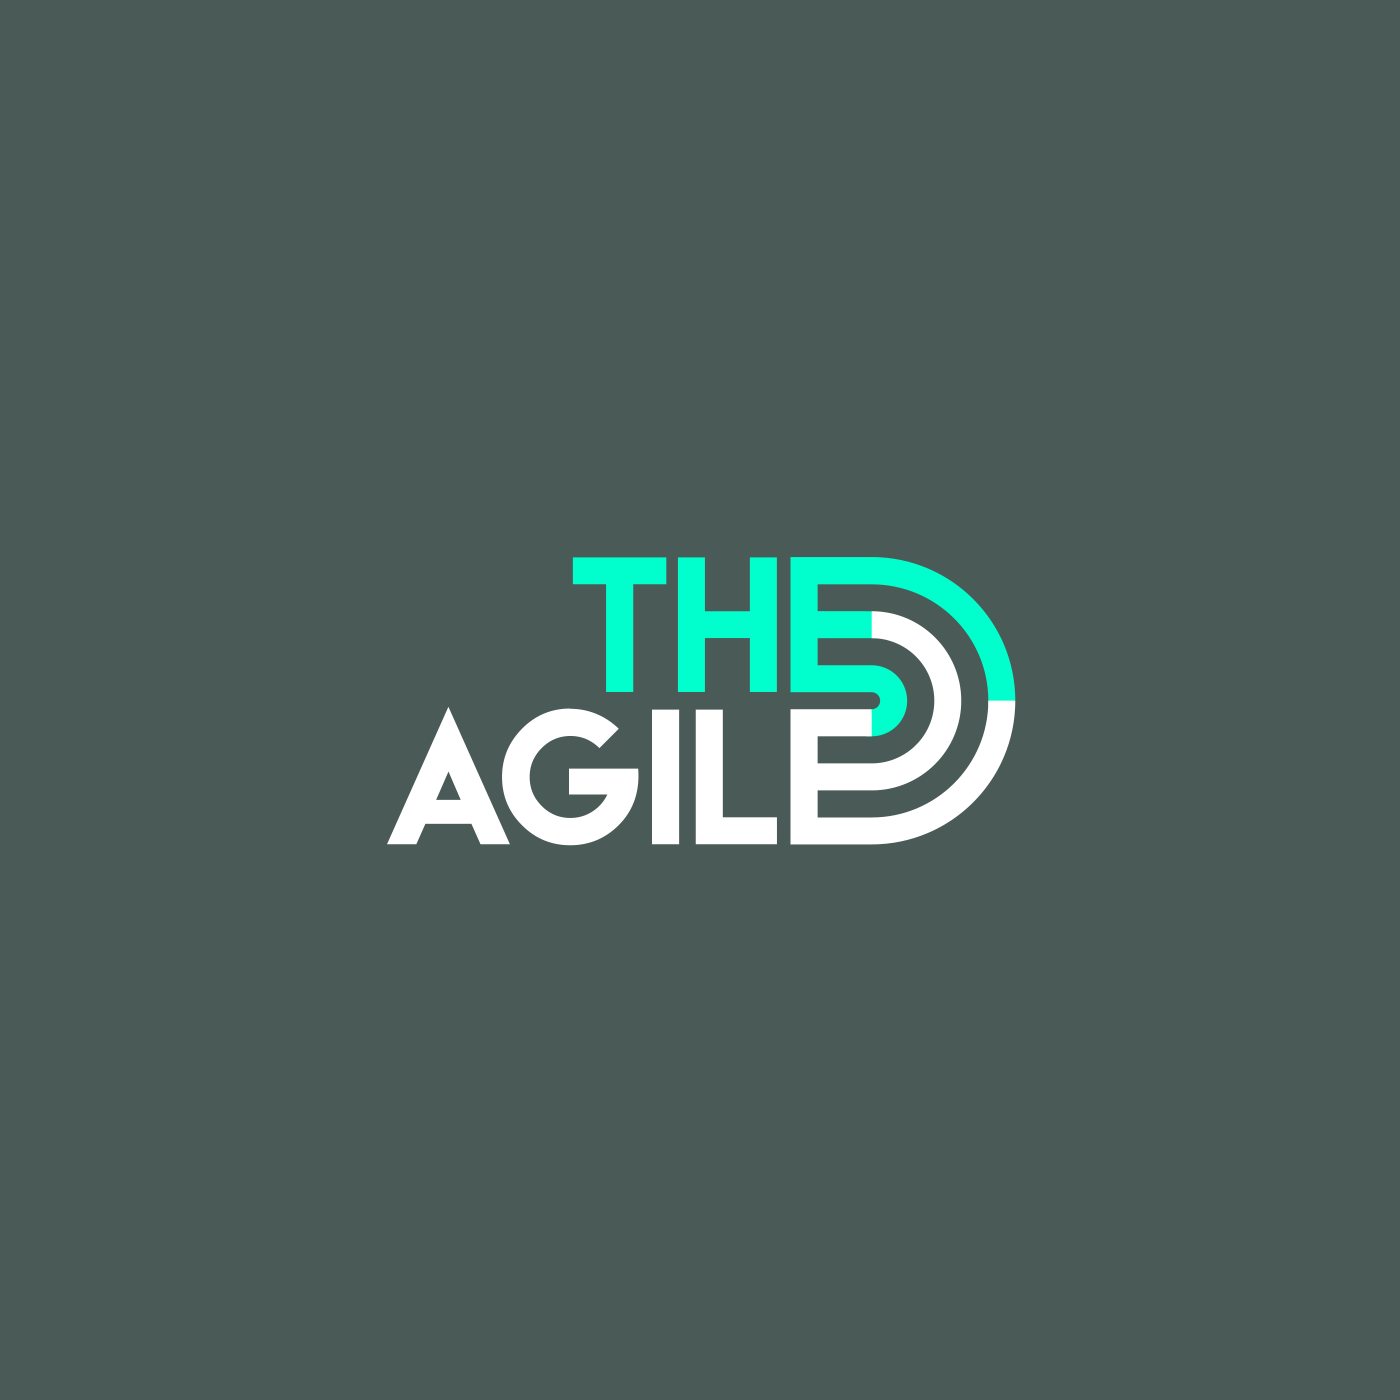 logo_the_agile_andre_levy_zhion.png